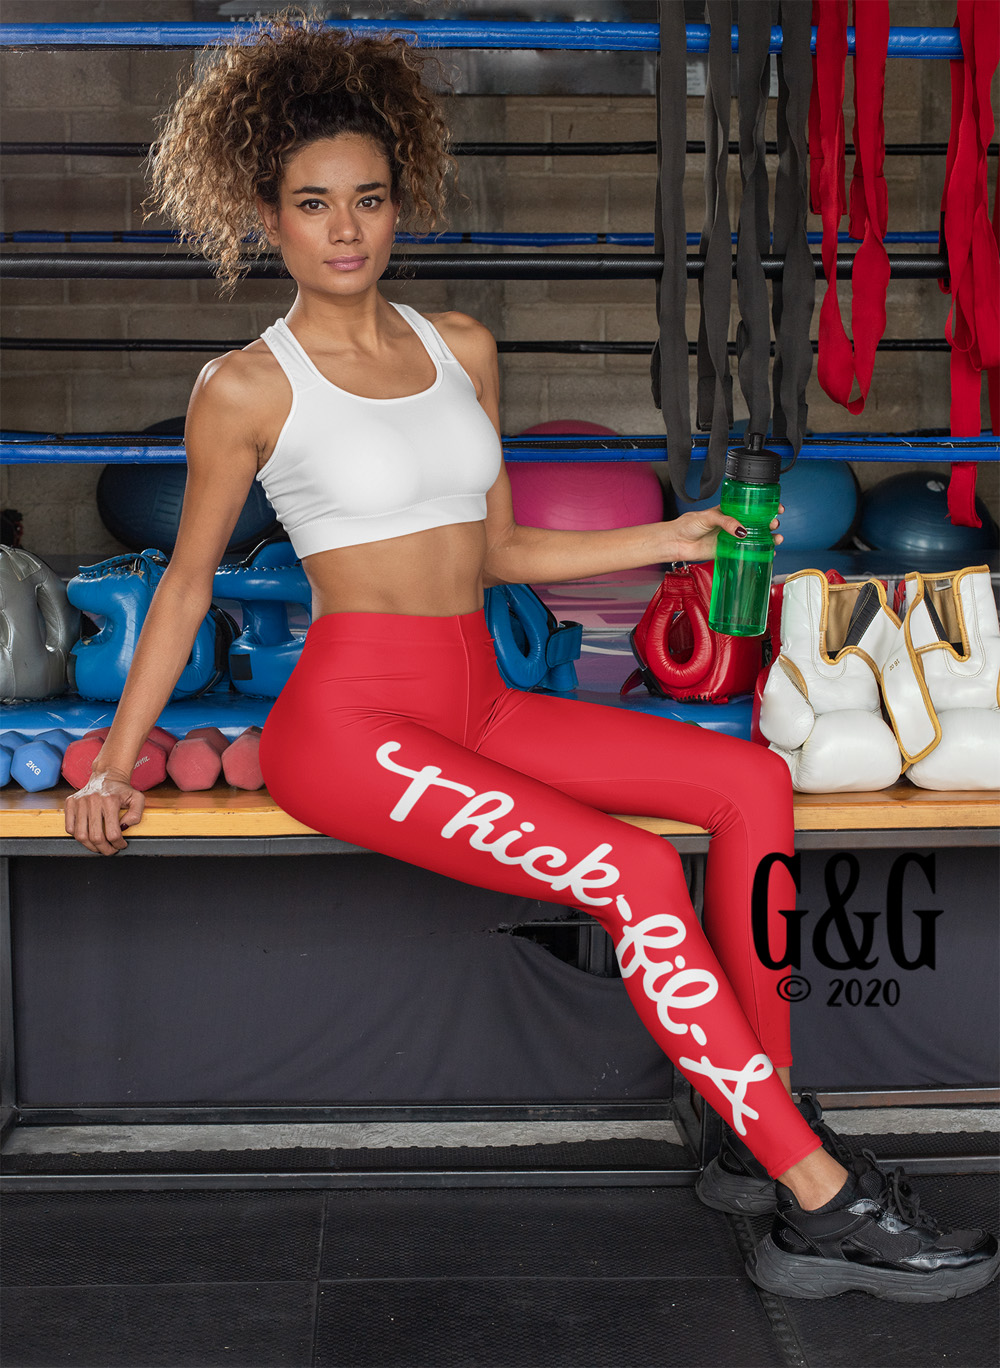 Thick-Fil-A Workout Outfit Set With Leggings For Juniors and Women